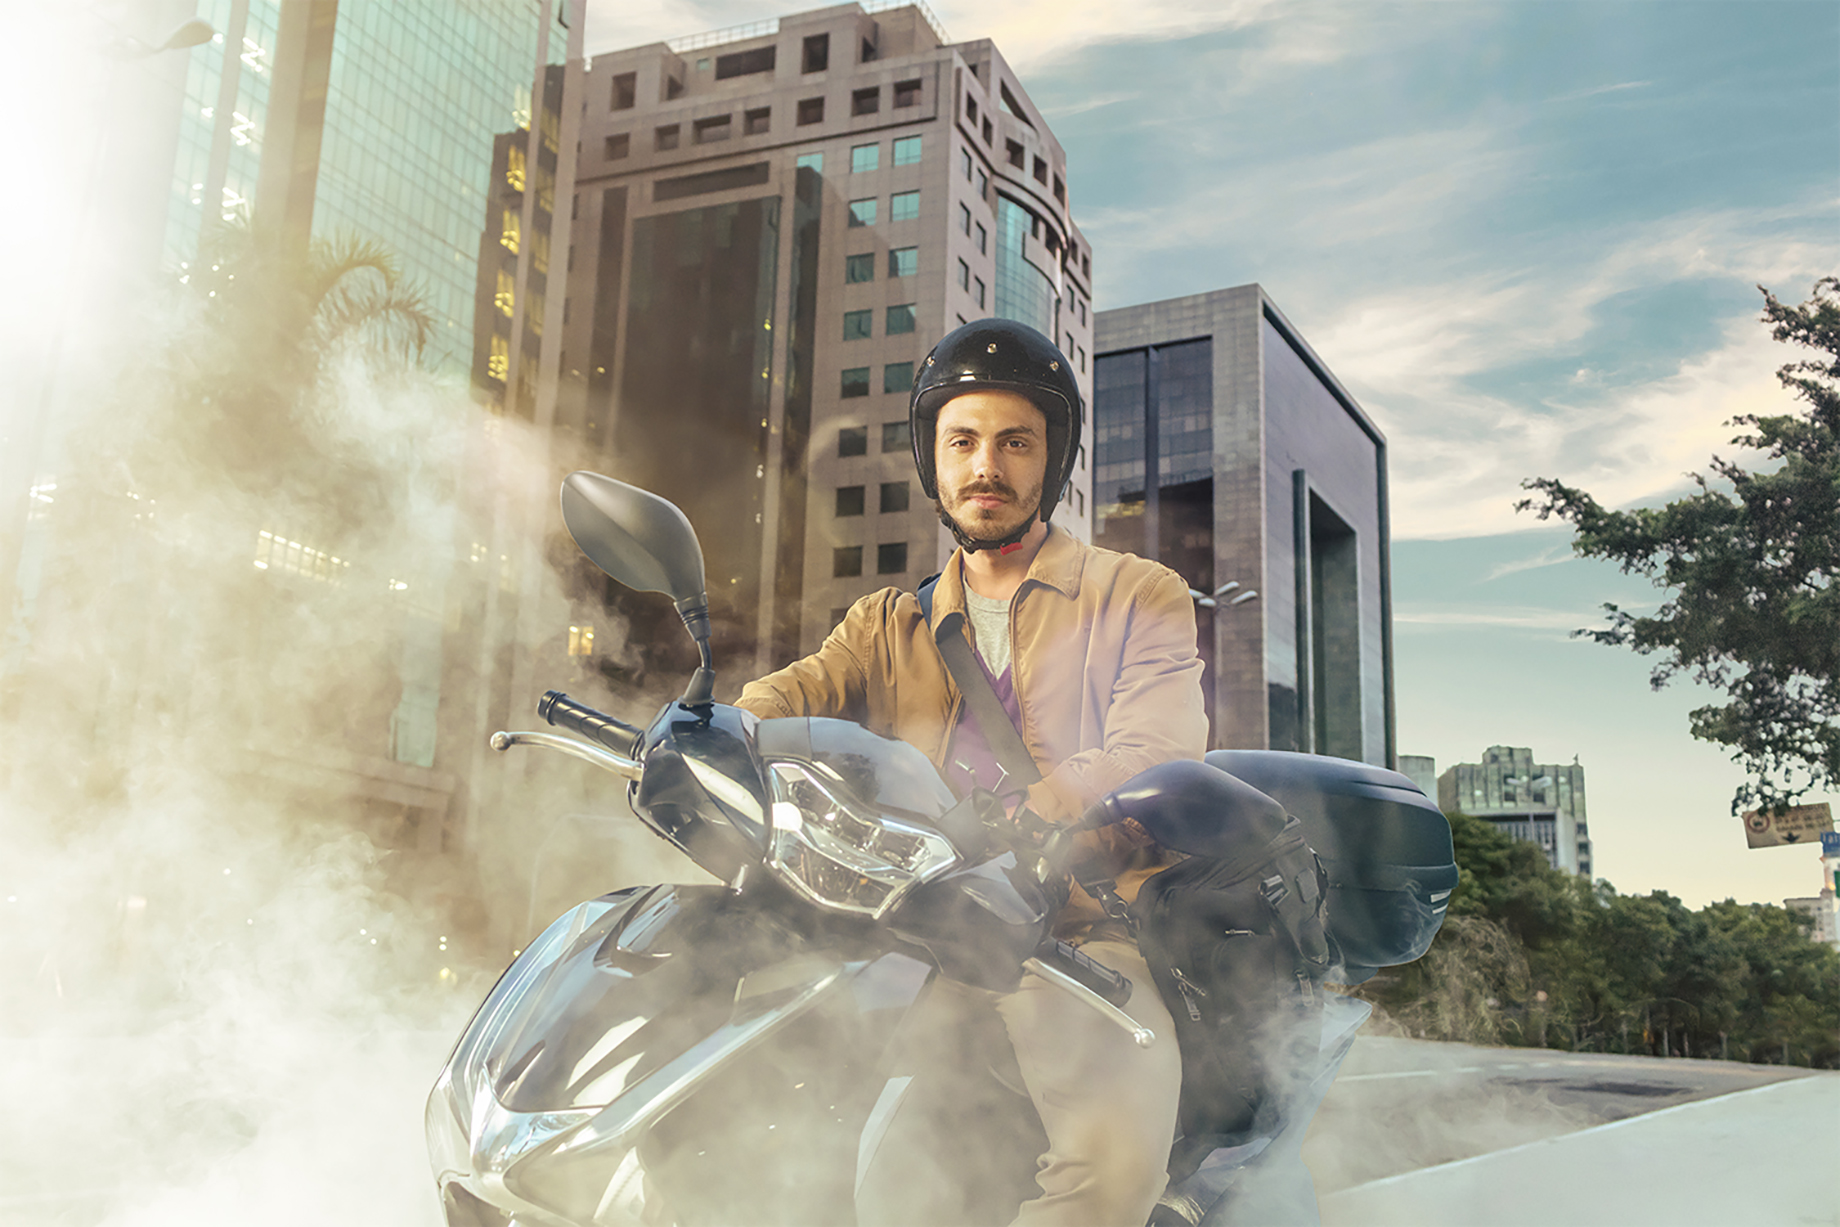 Portrait of a man riding motorcycle with dust around him shot by Claus Lehmann for Allegra campaign